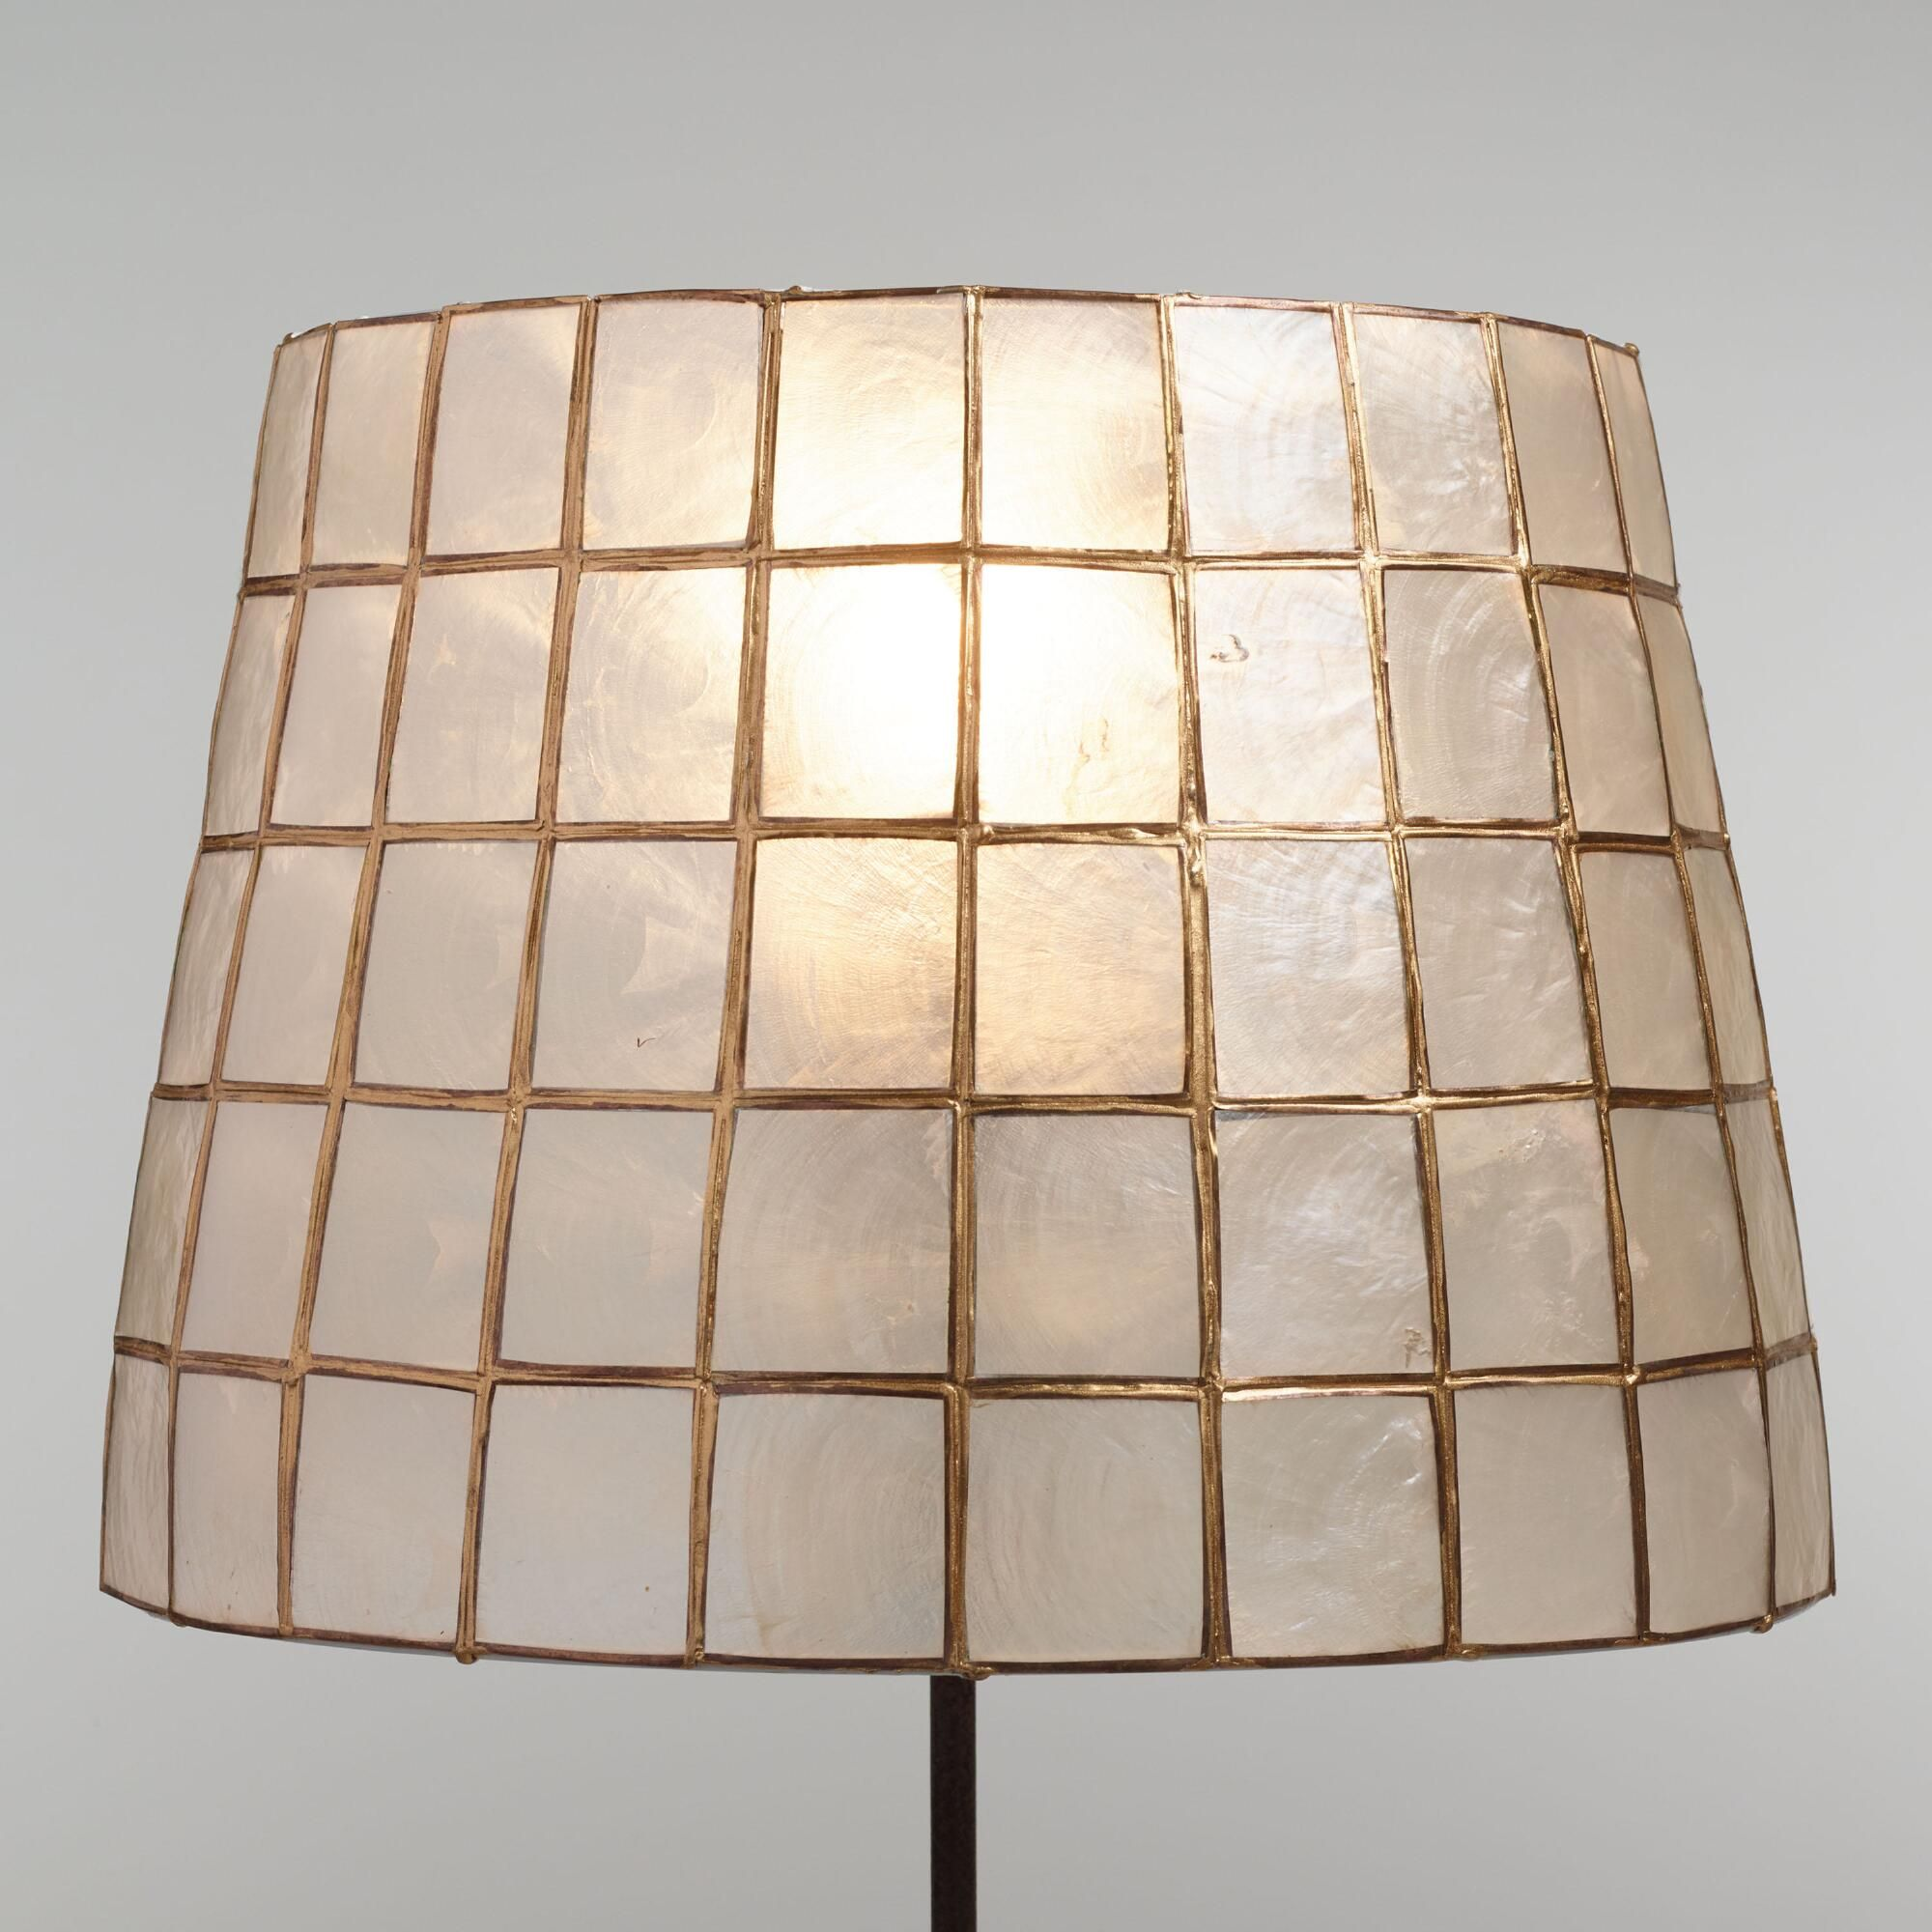 Gold Capiz Tapered Table Lamp Shade Capiz Shell By World Market Lampshadeideassimple Wall Lamp Shades Metal Lamp Shade Lamp Shade